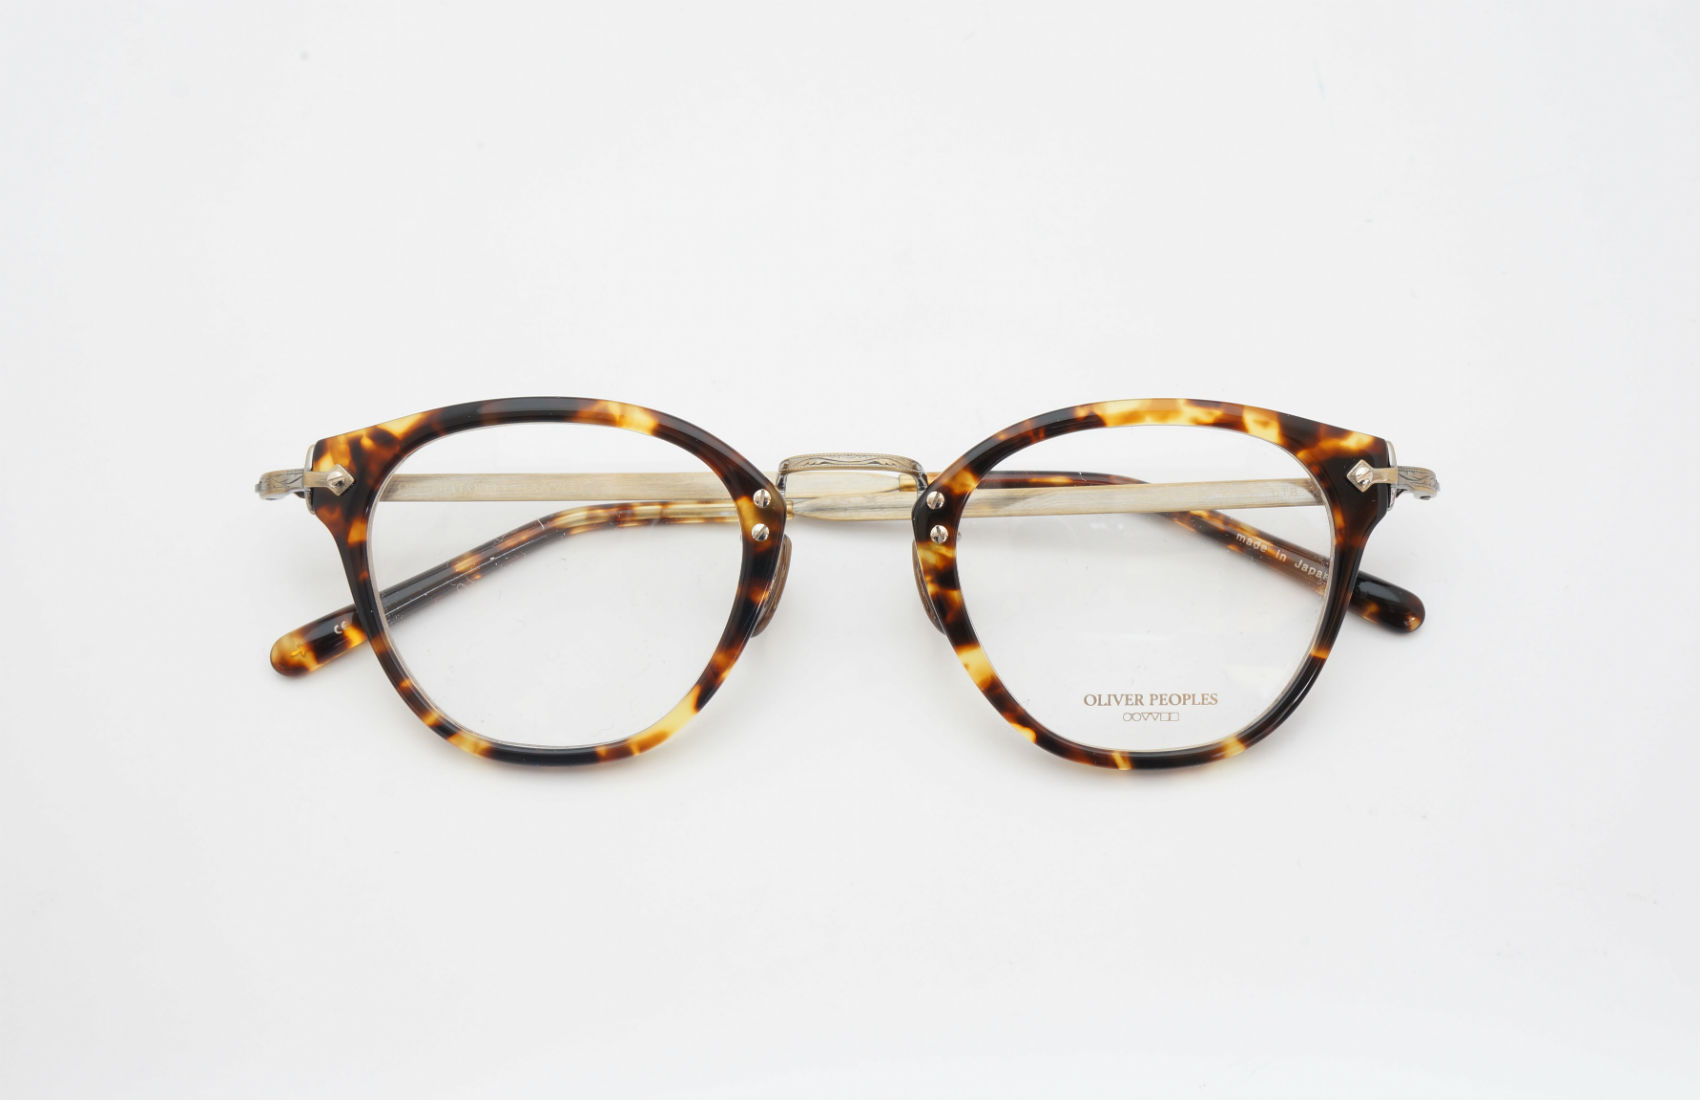 OLIVER PEOPLES 507C new